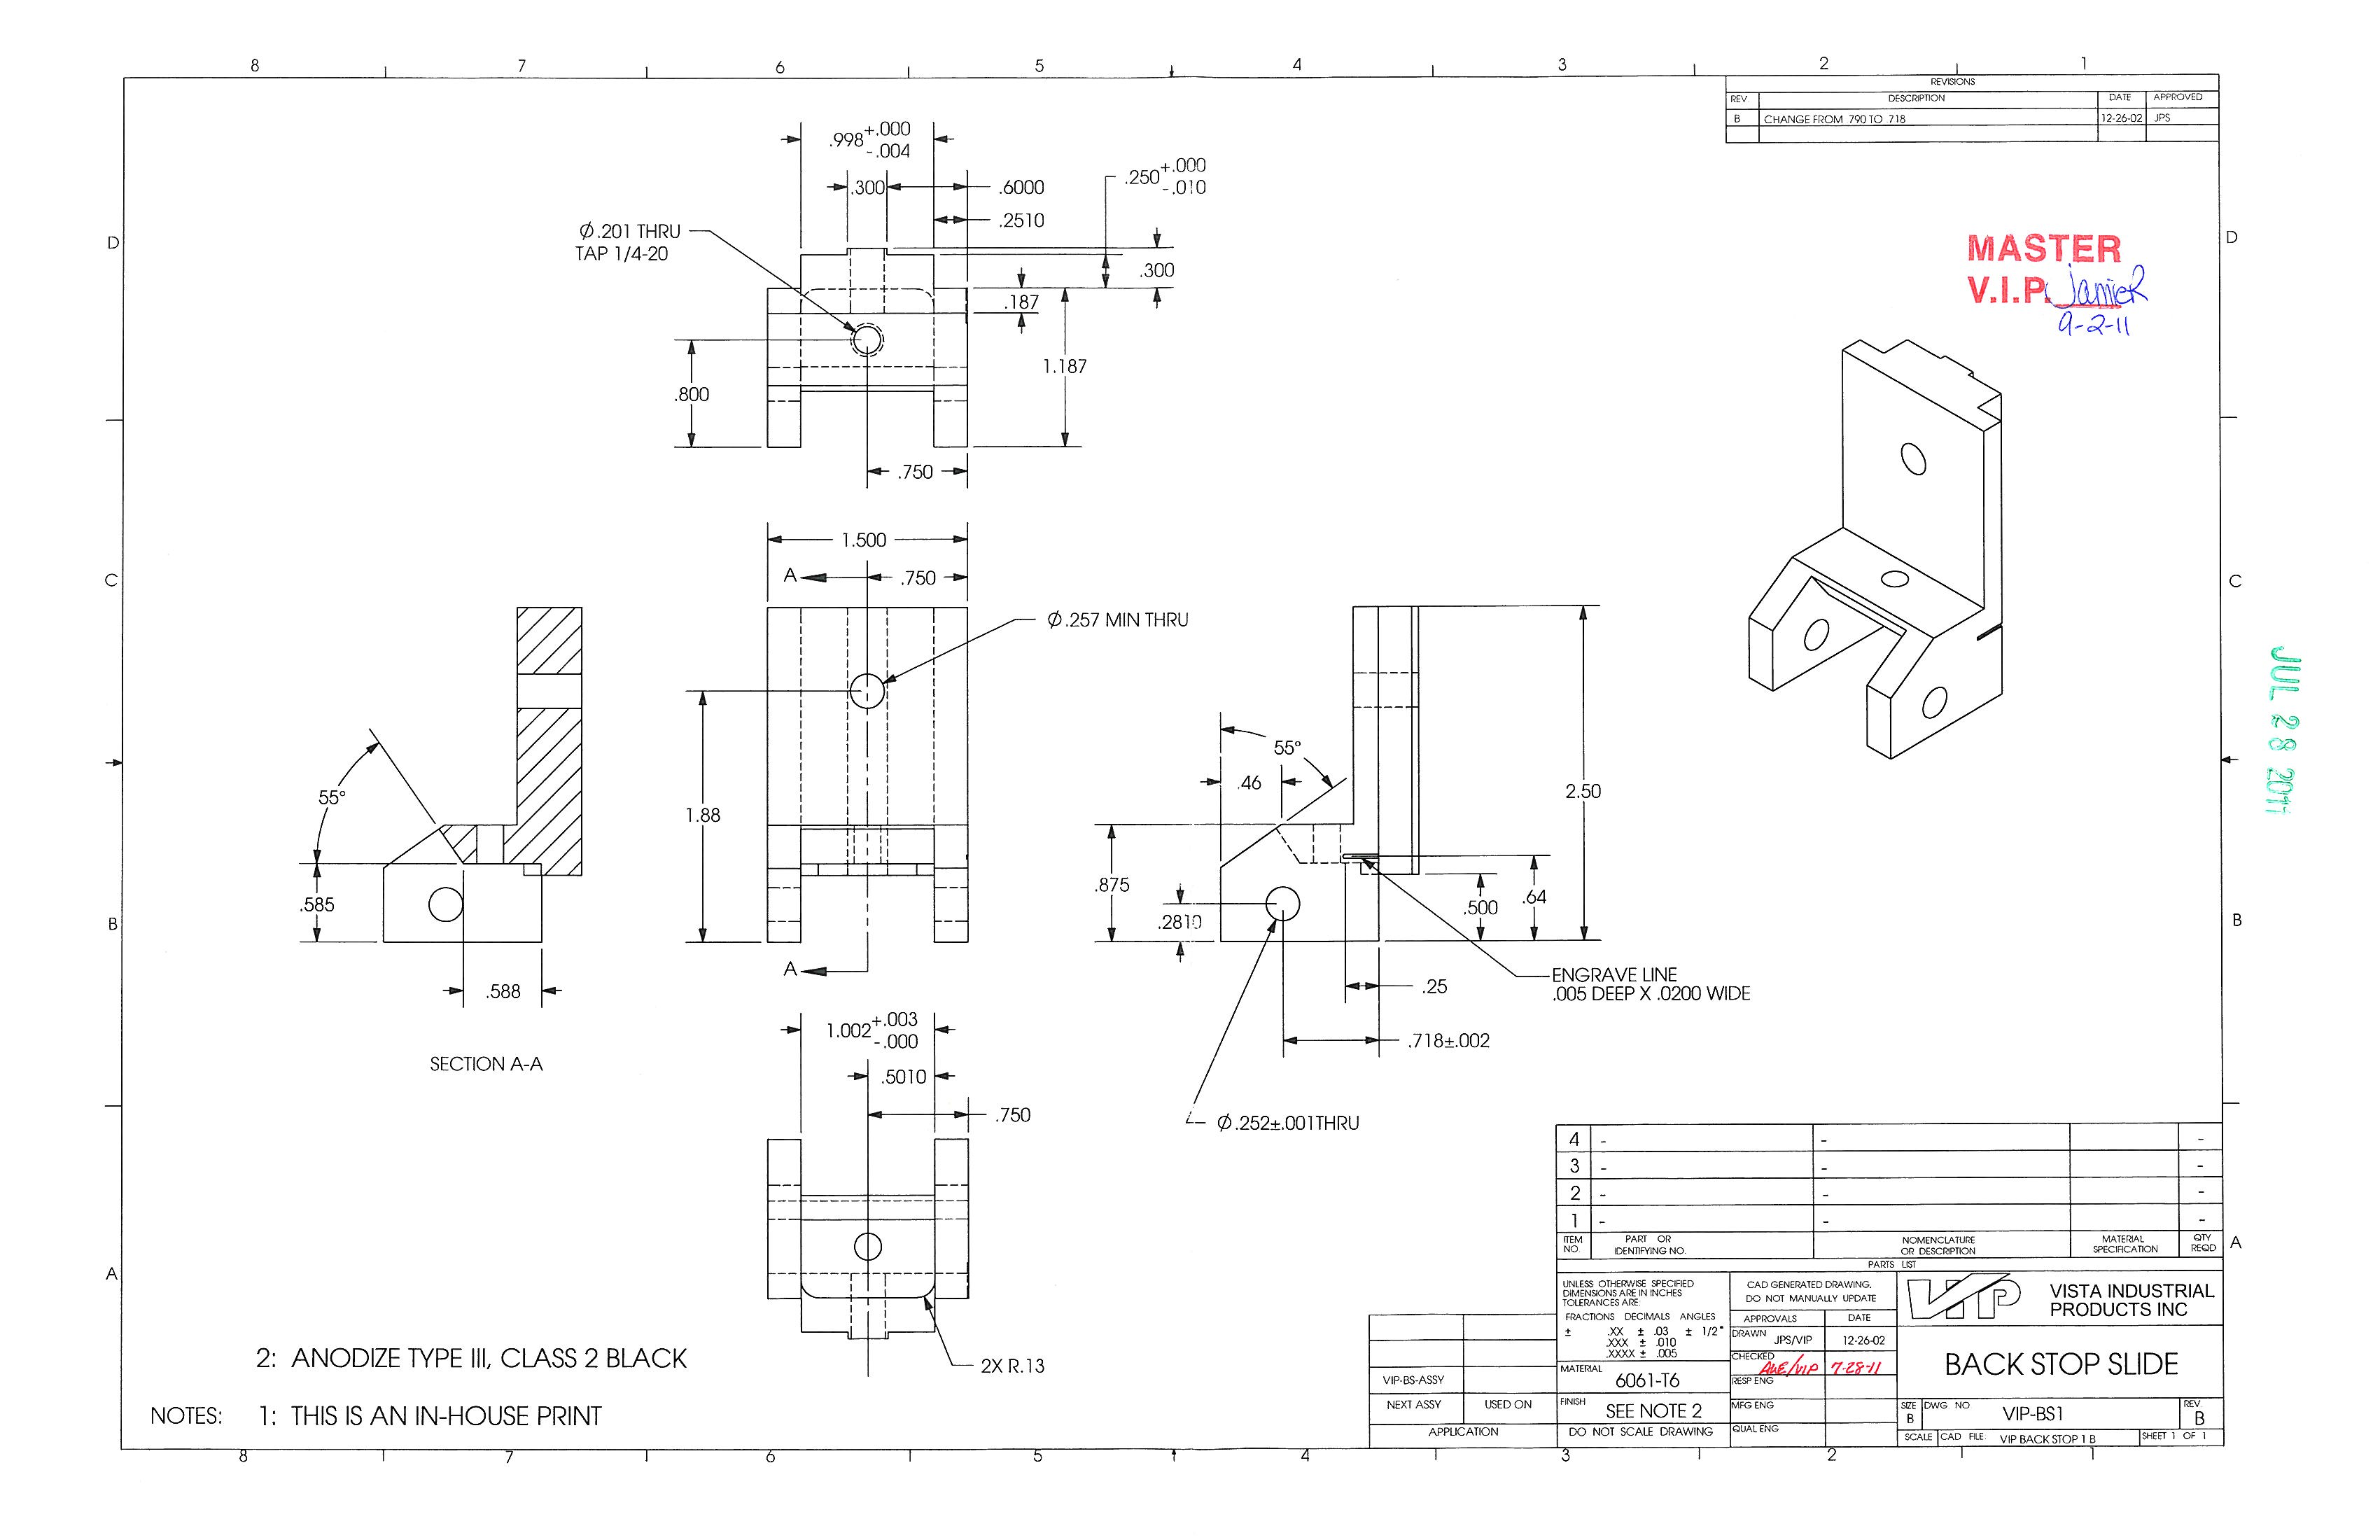 How to read a manufacturing drawing vista industrial products inc malvernweather Images